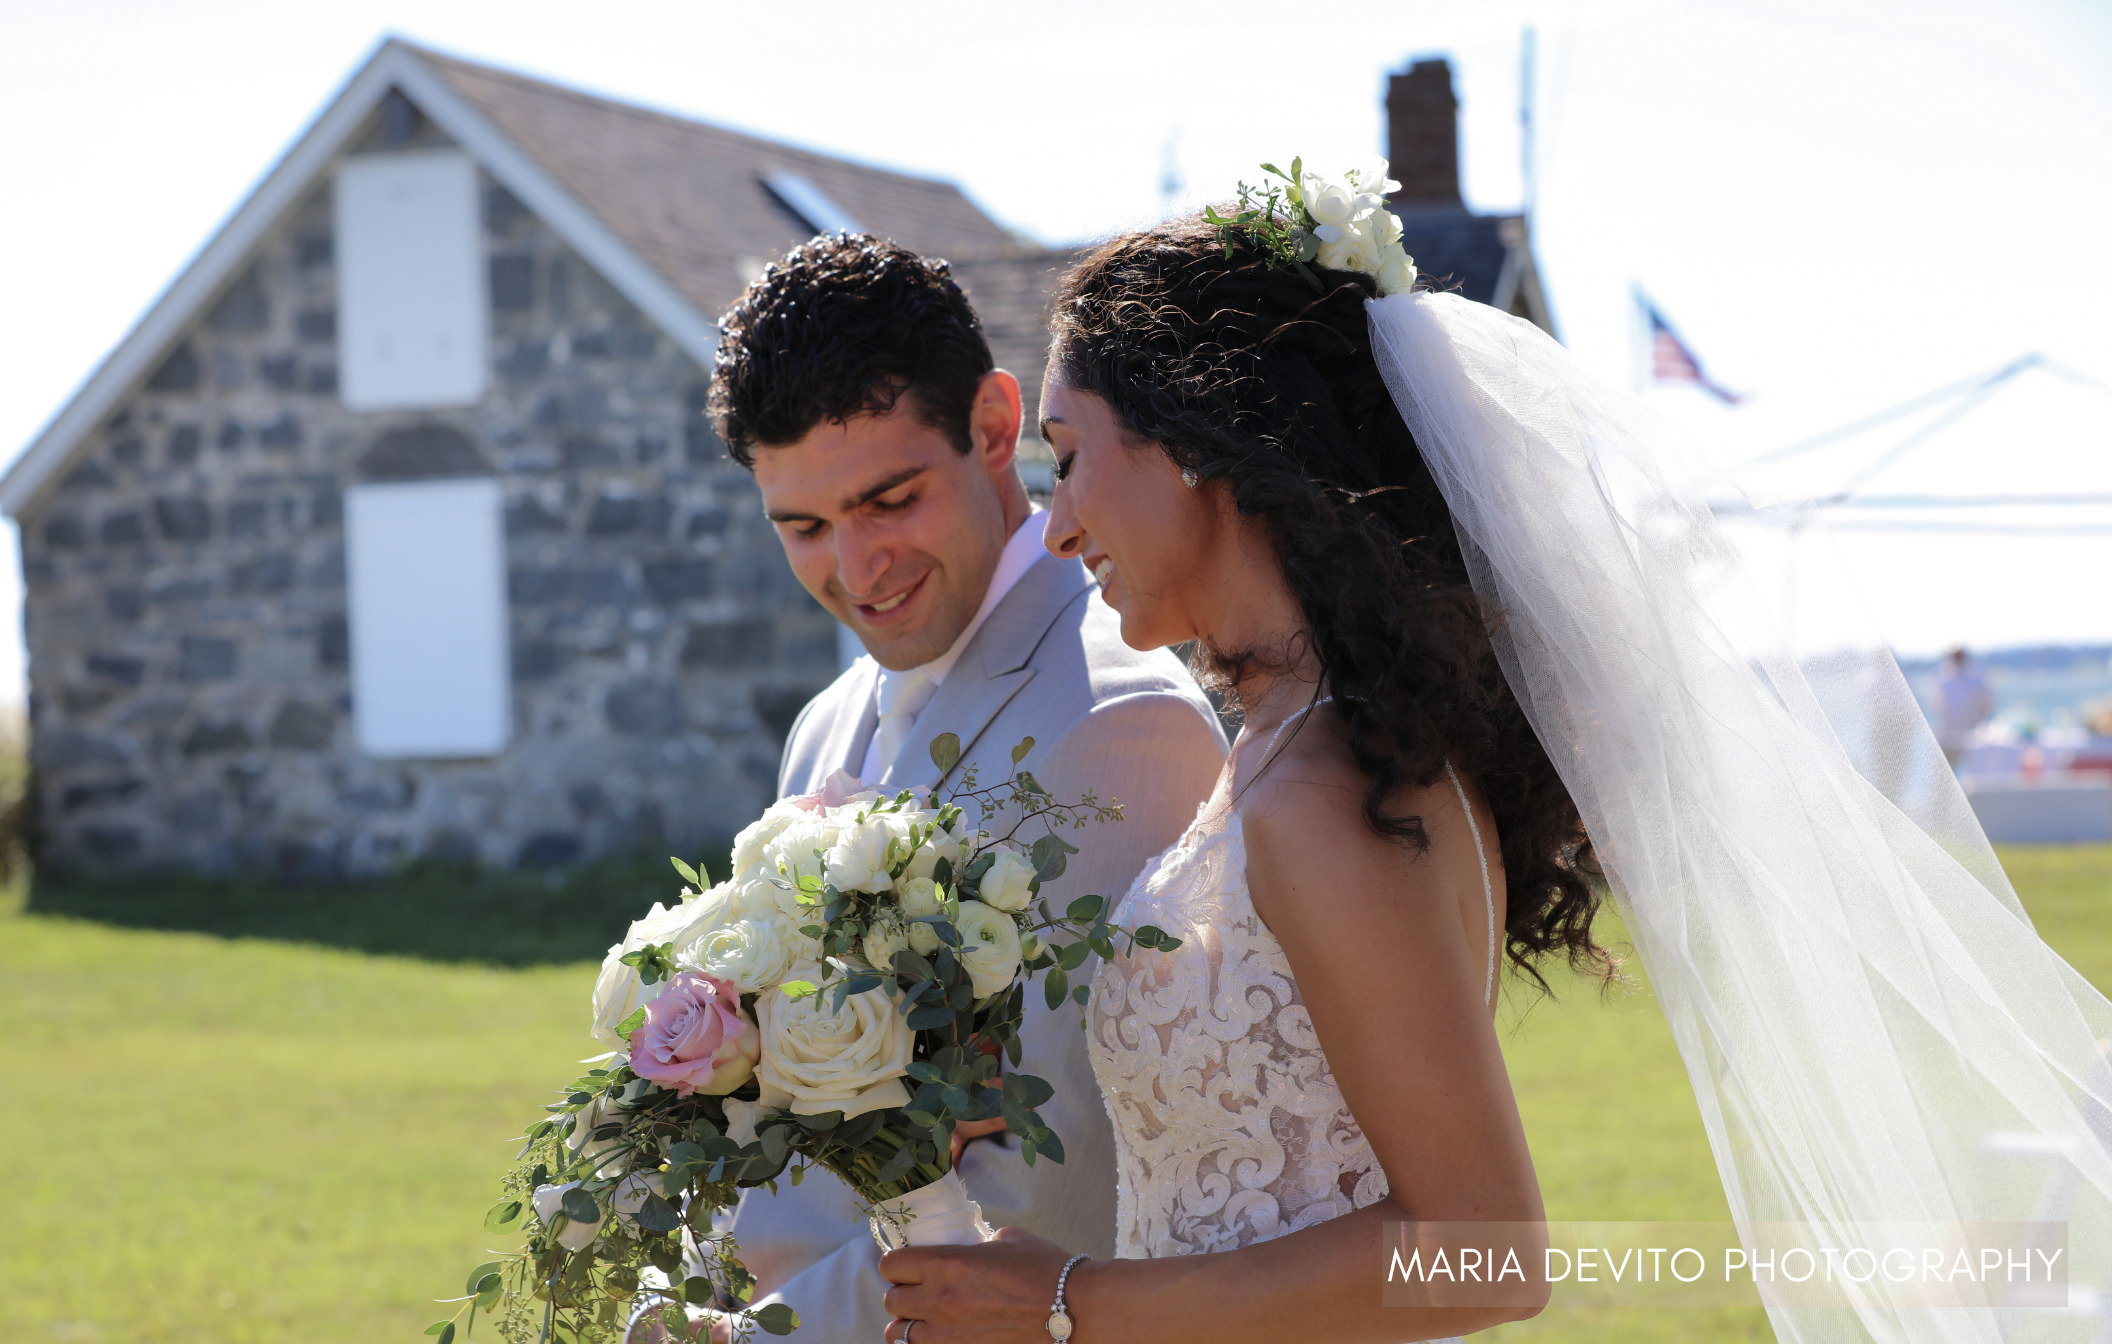 Bride and groom holding gorgeous bouquet in front of a stone building with veil trailing in the wind